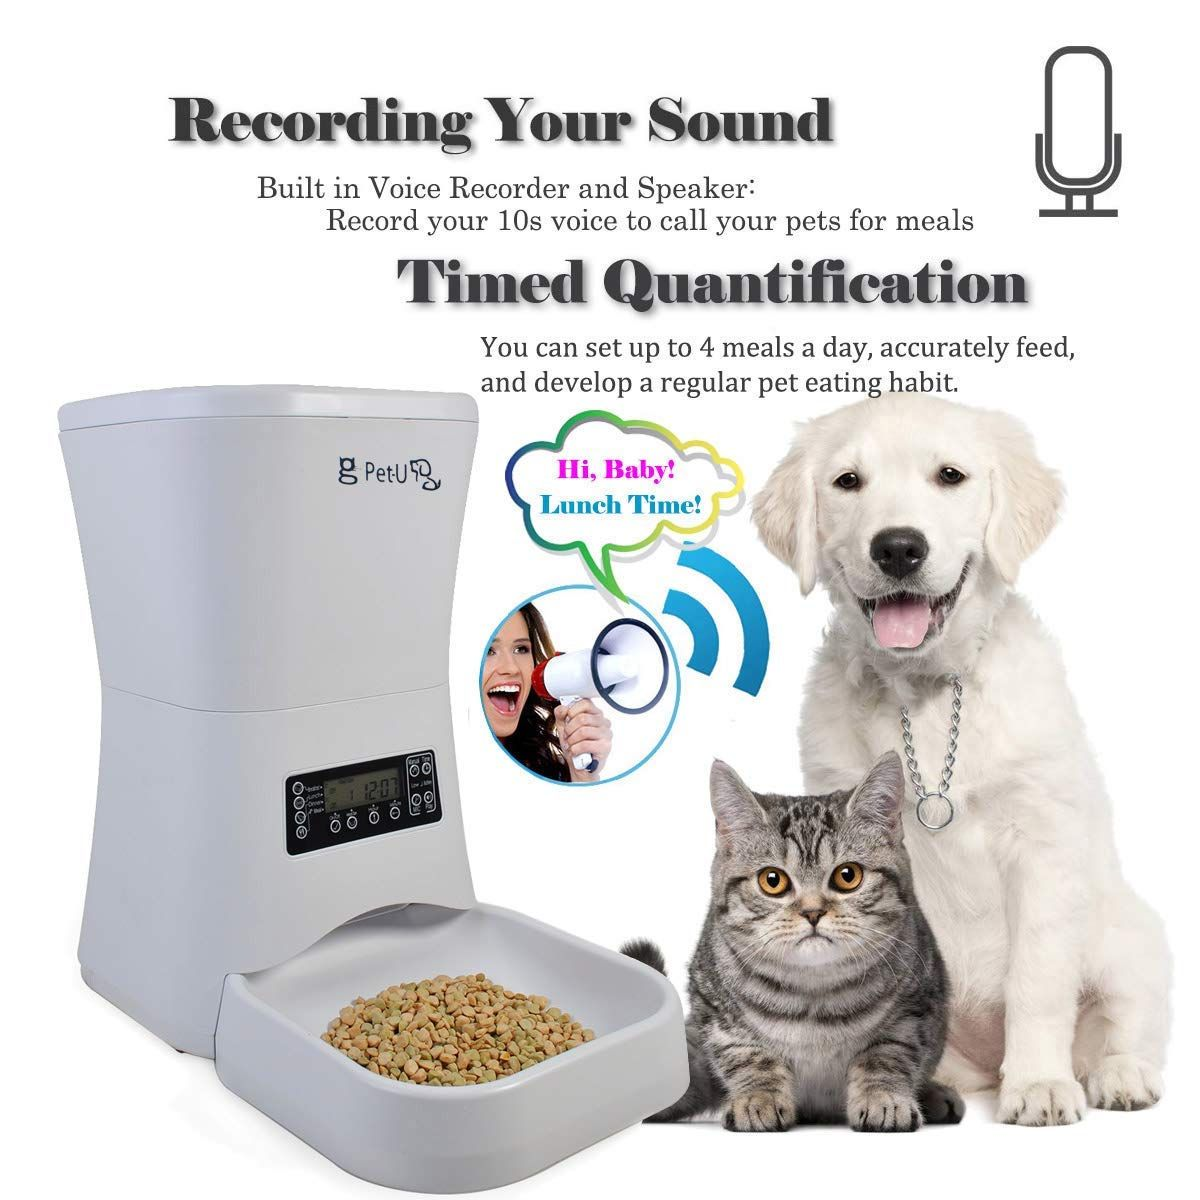 Usdream 7l Smart Automatic Pet Feeder Cats And Dogs Food Auto Dispenser With Voice Recorder Andamp Timer Programmable In 2020 Pet Feeder Dog Food Recipes Dog Feeder